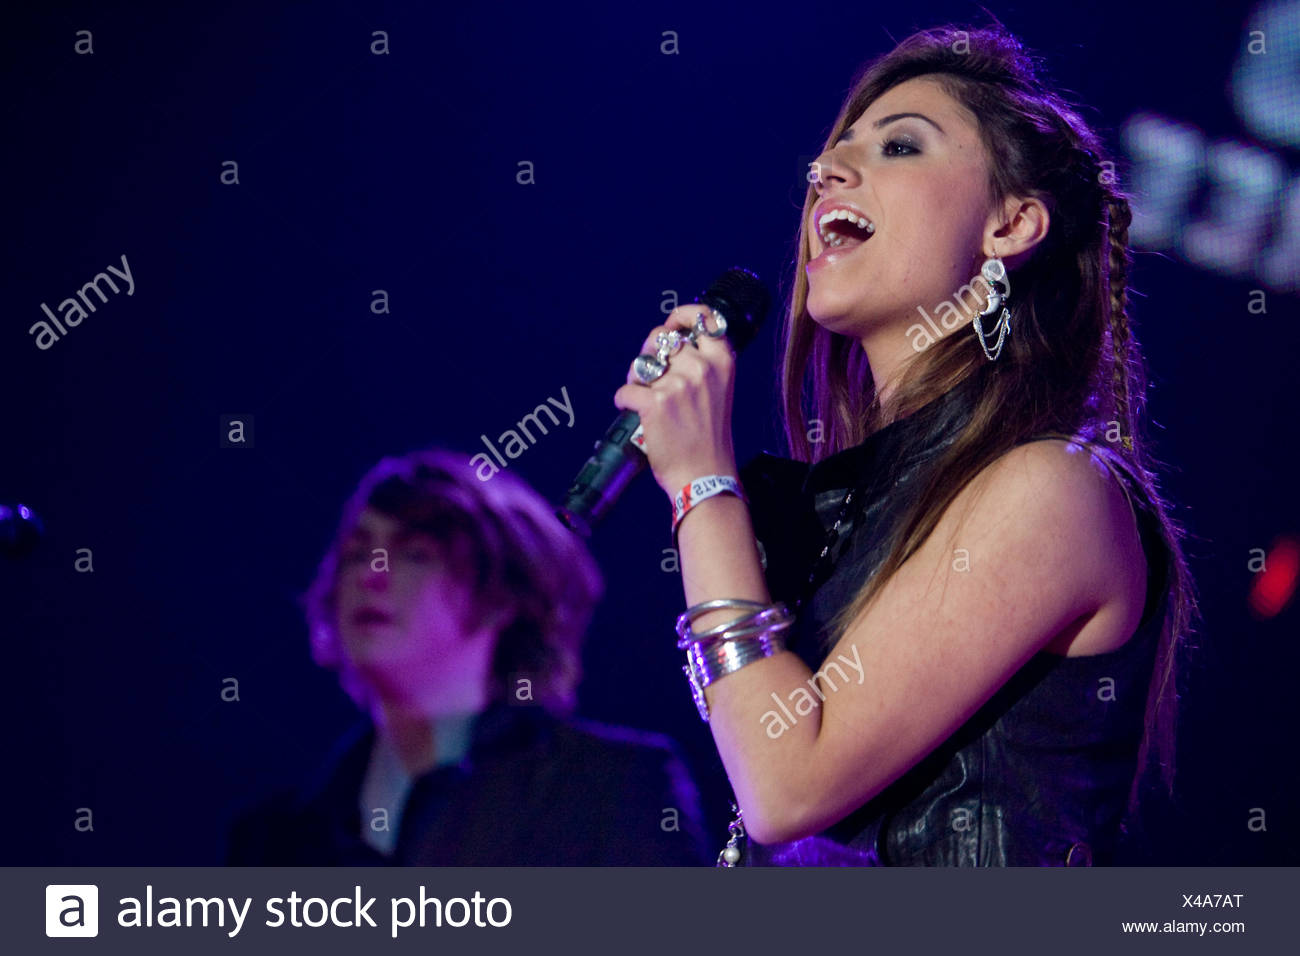 Australian pop singer and newcomer Gabriella Cilmi, live at the Energy Stars For Free in the Zurich stadium, Switzerland - Stock Image